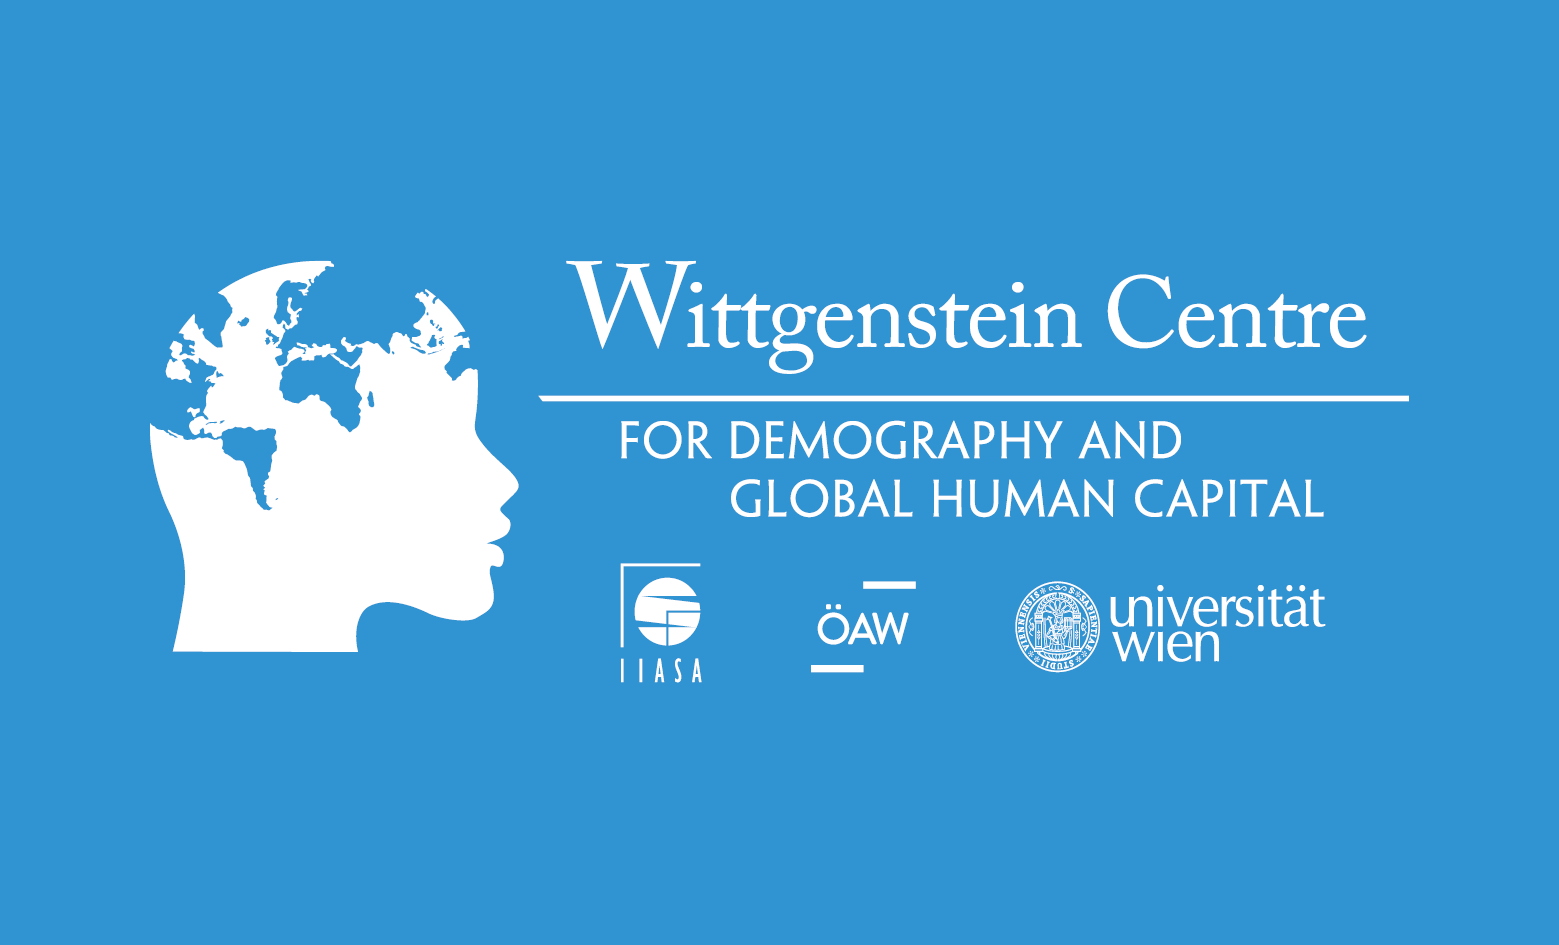 Partner: Wittgenstein Centre for Demography and Global Human Capital